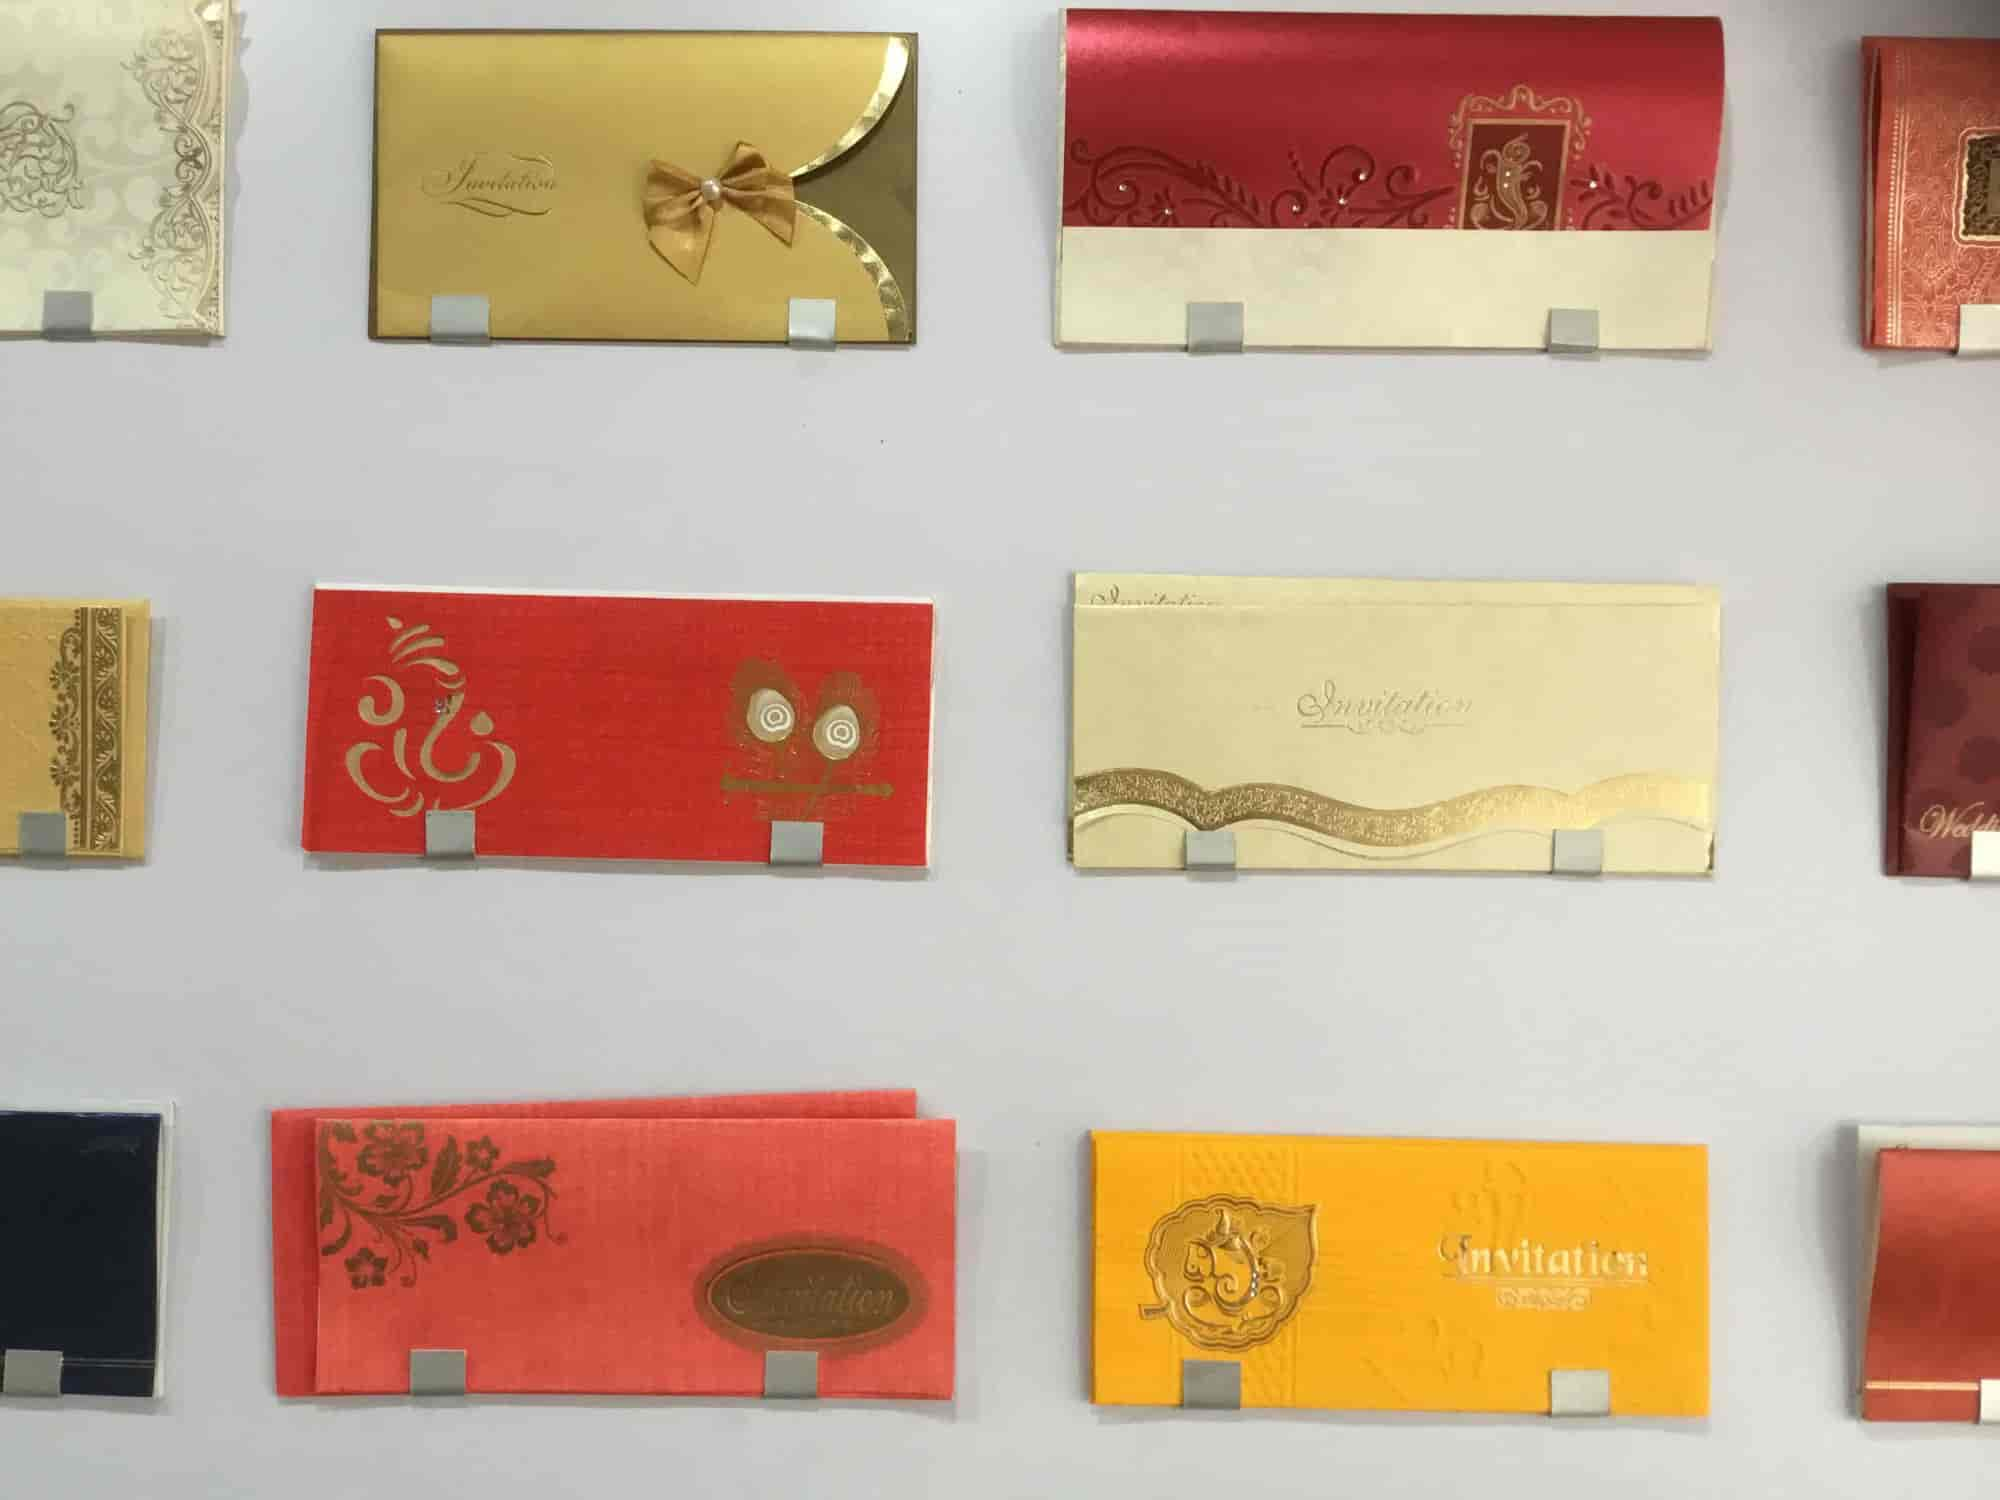 Rainbow Wedding Cards - Offset Printers in Thrissur - Justdial